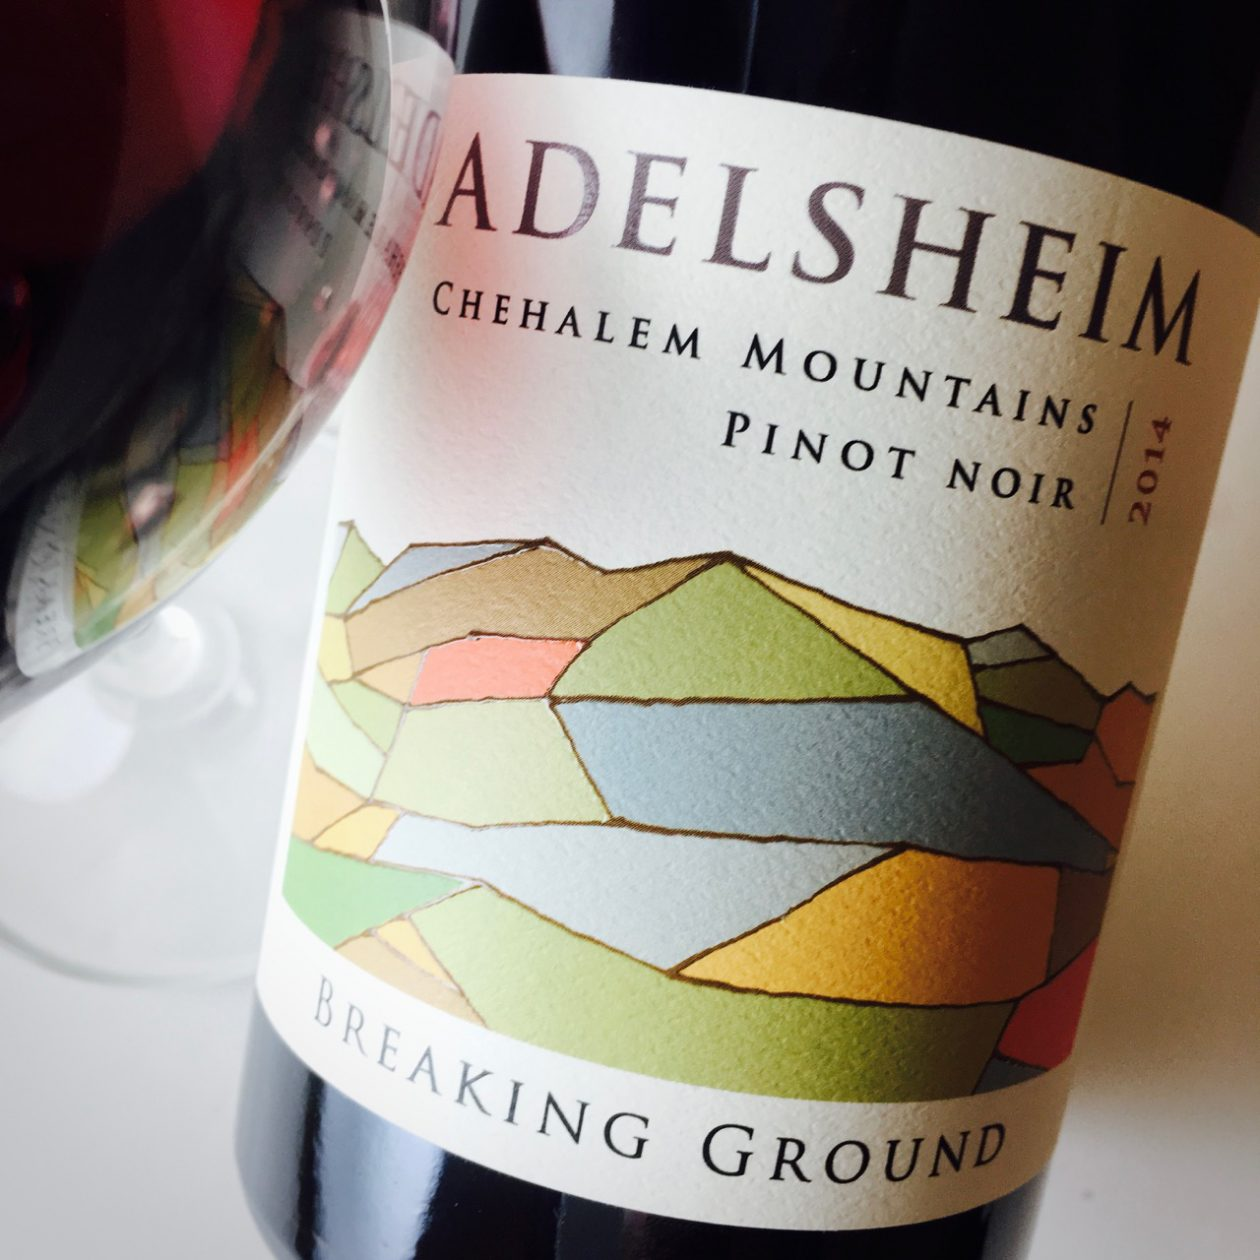 2014 Adelsheim Pinot Noir Breaking Ground Chehalem Mountains